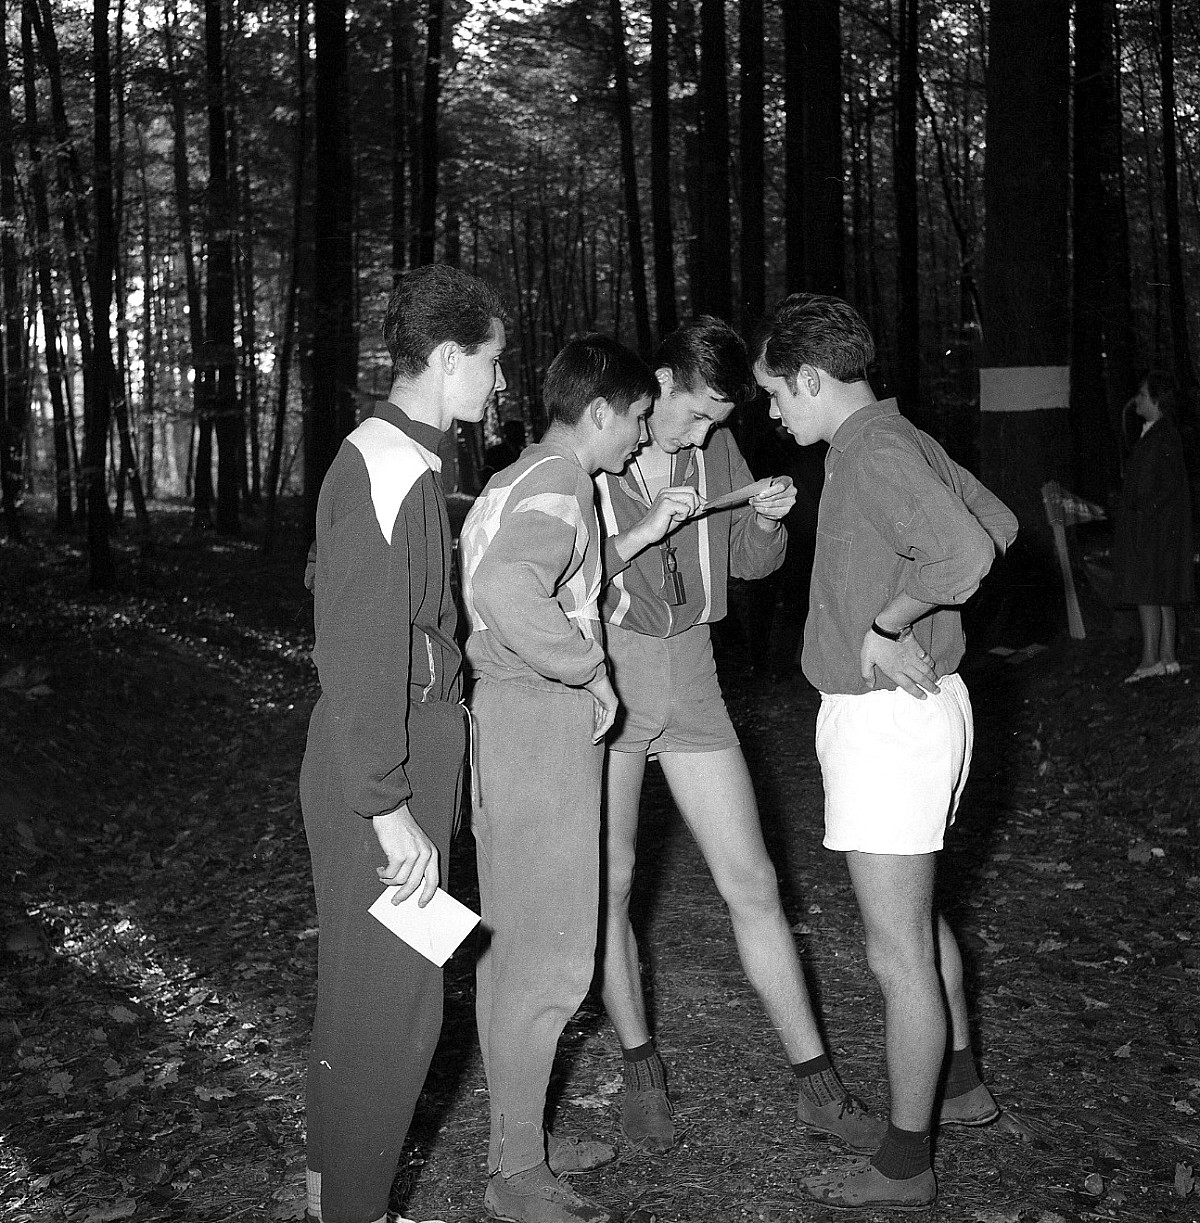 GFA 17/631631.1: Orienteering for apprentices